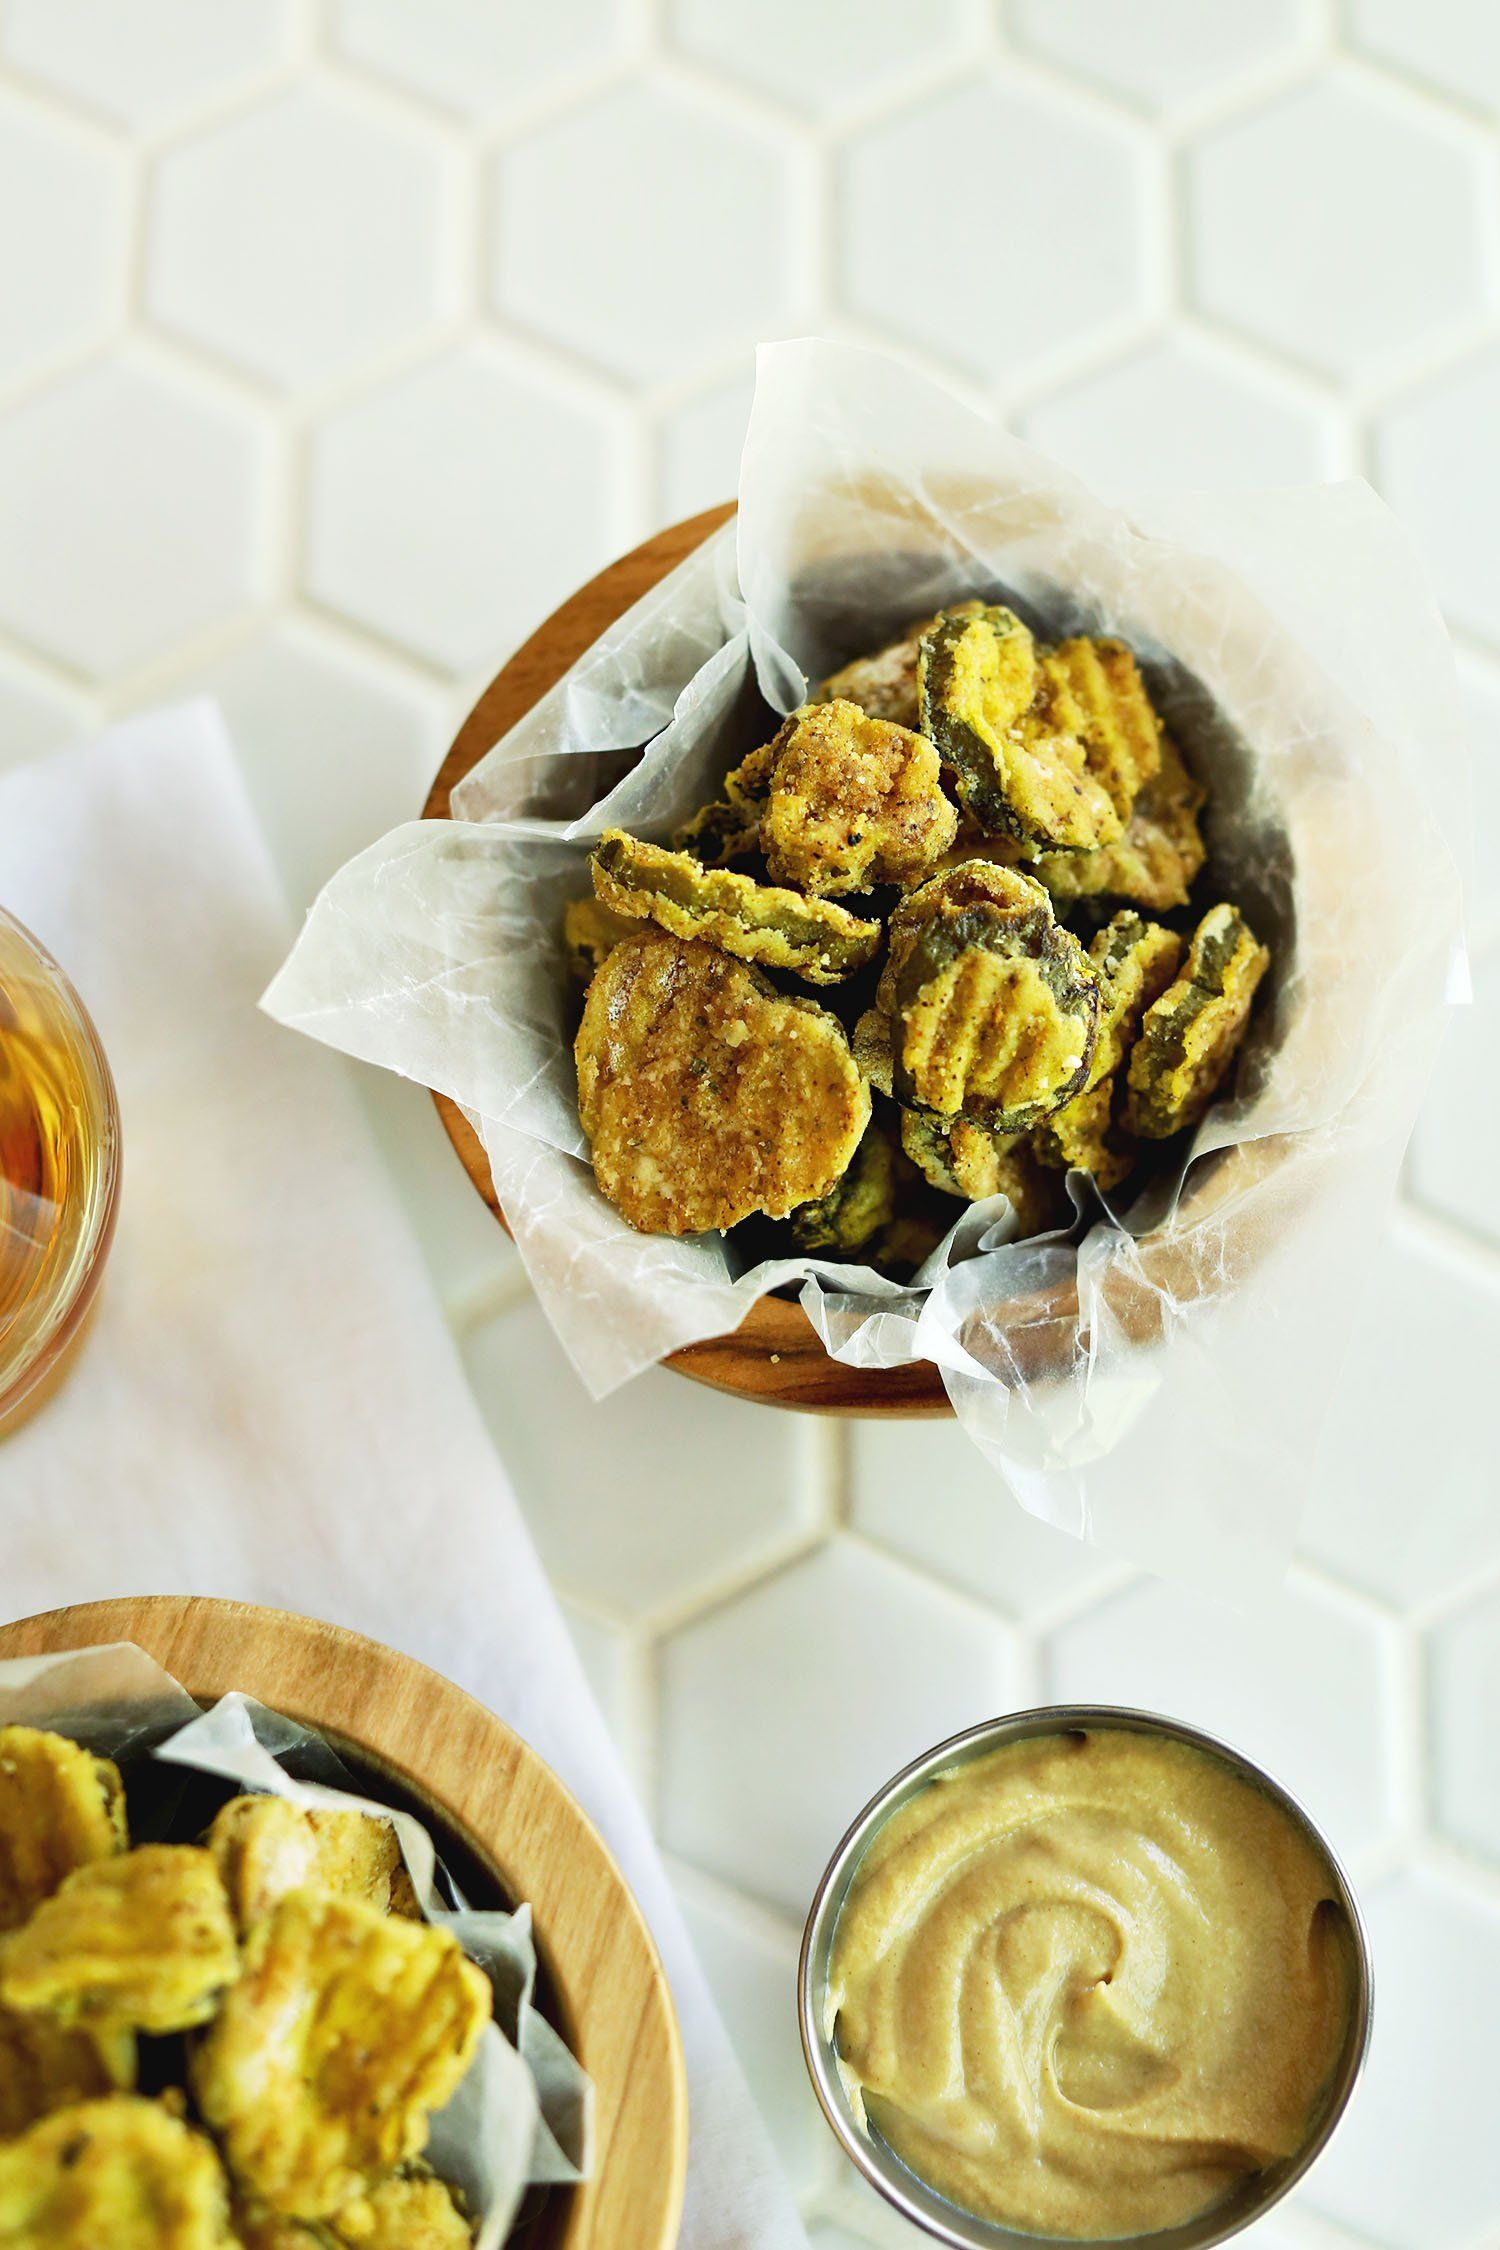 These Crunchy Air Fryer Fried Pickles are Delicious Air